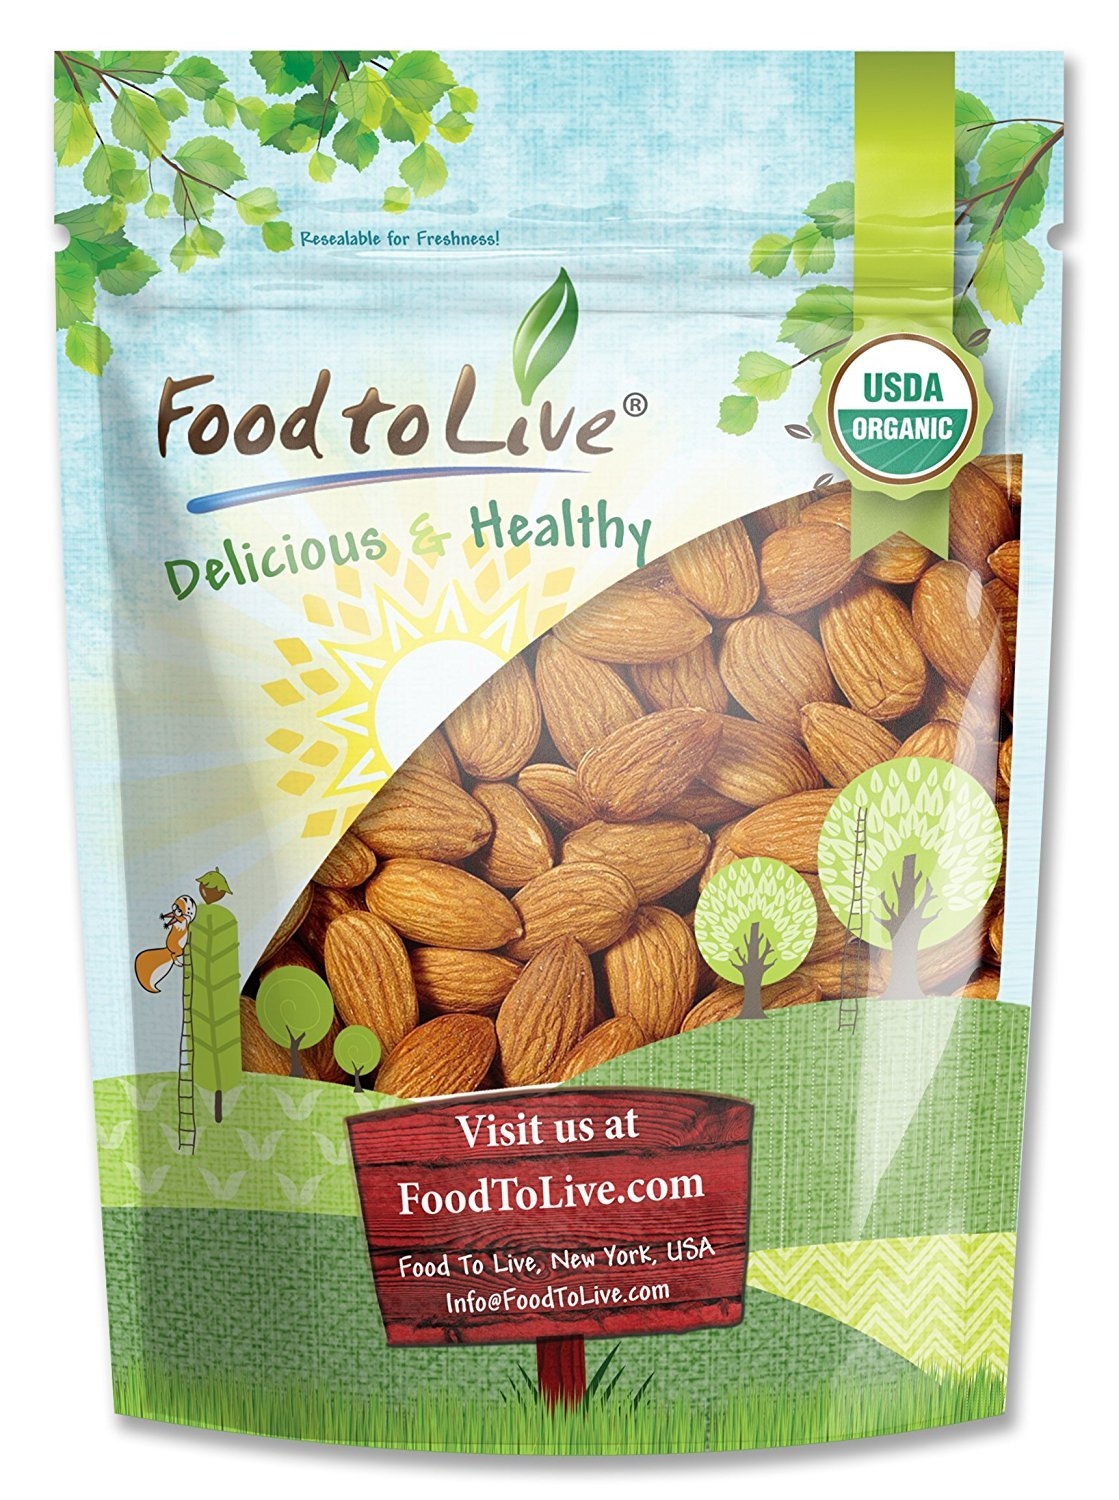 Organic Almonds, 3 Pounds - Non-GMO, Kosher, No Shell, Whole, Unpasteurized, Unsalted, Raw, Bulk